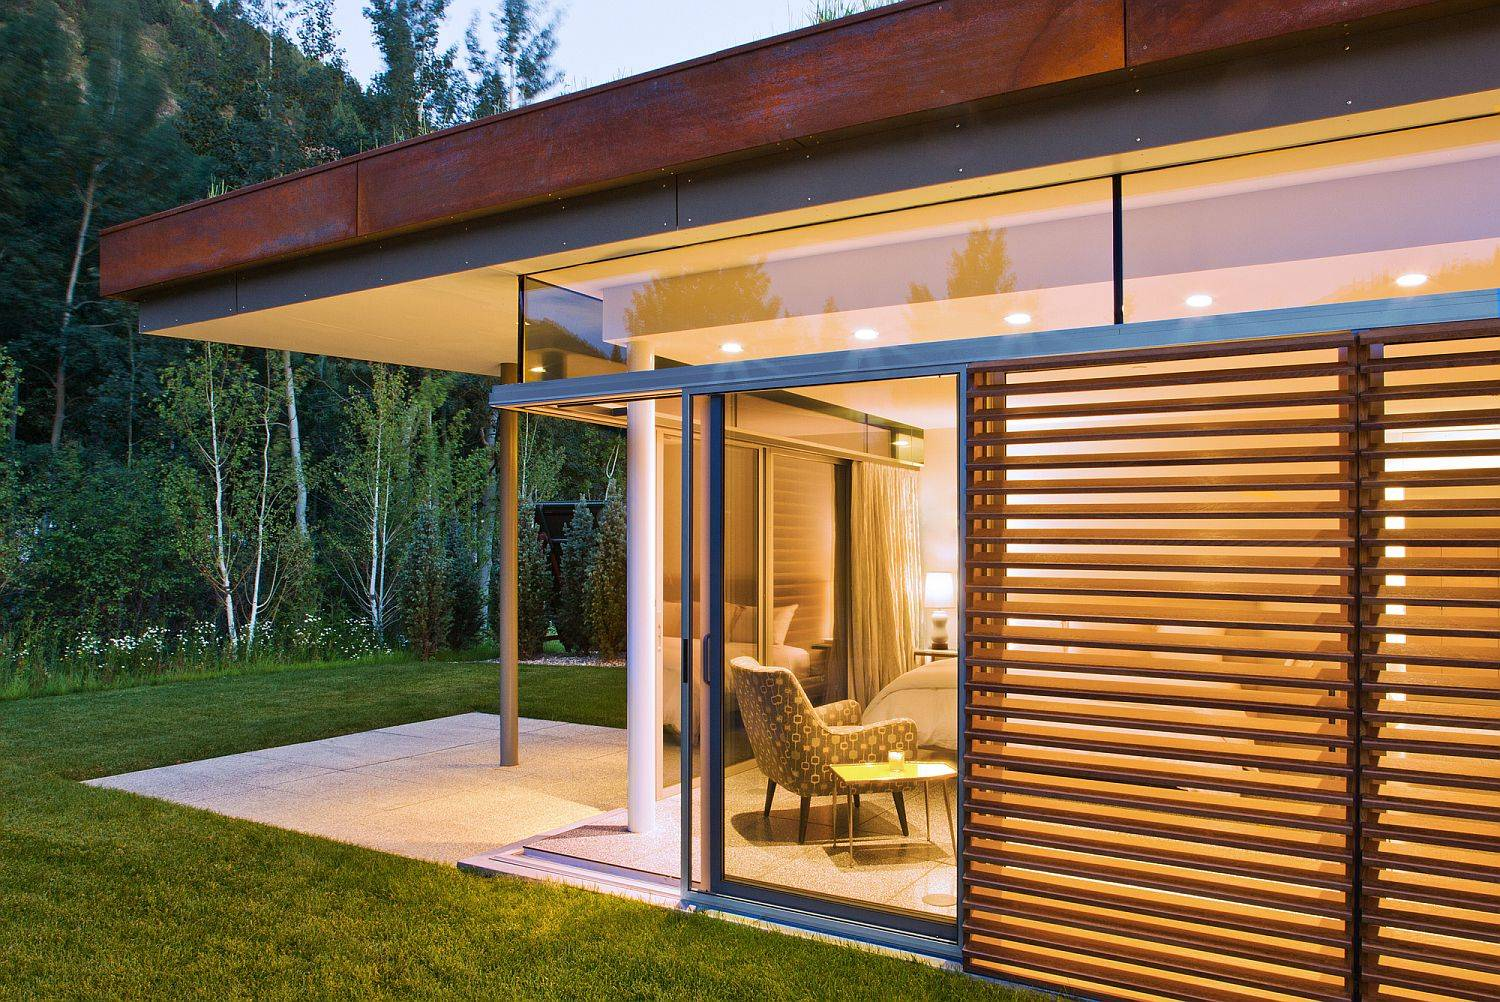 Sliding-glass-doors-and-shutters-coupled-with-clerestory-windows-for-the-modern-home-29576